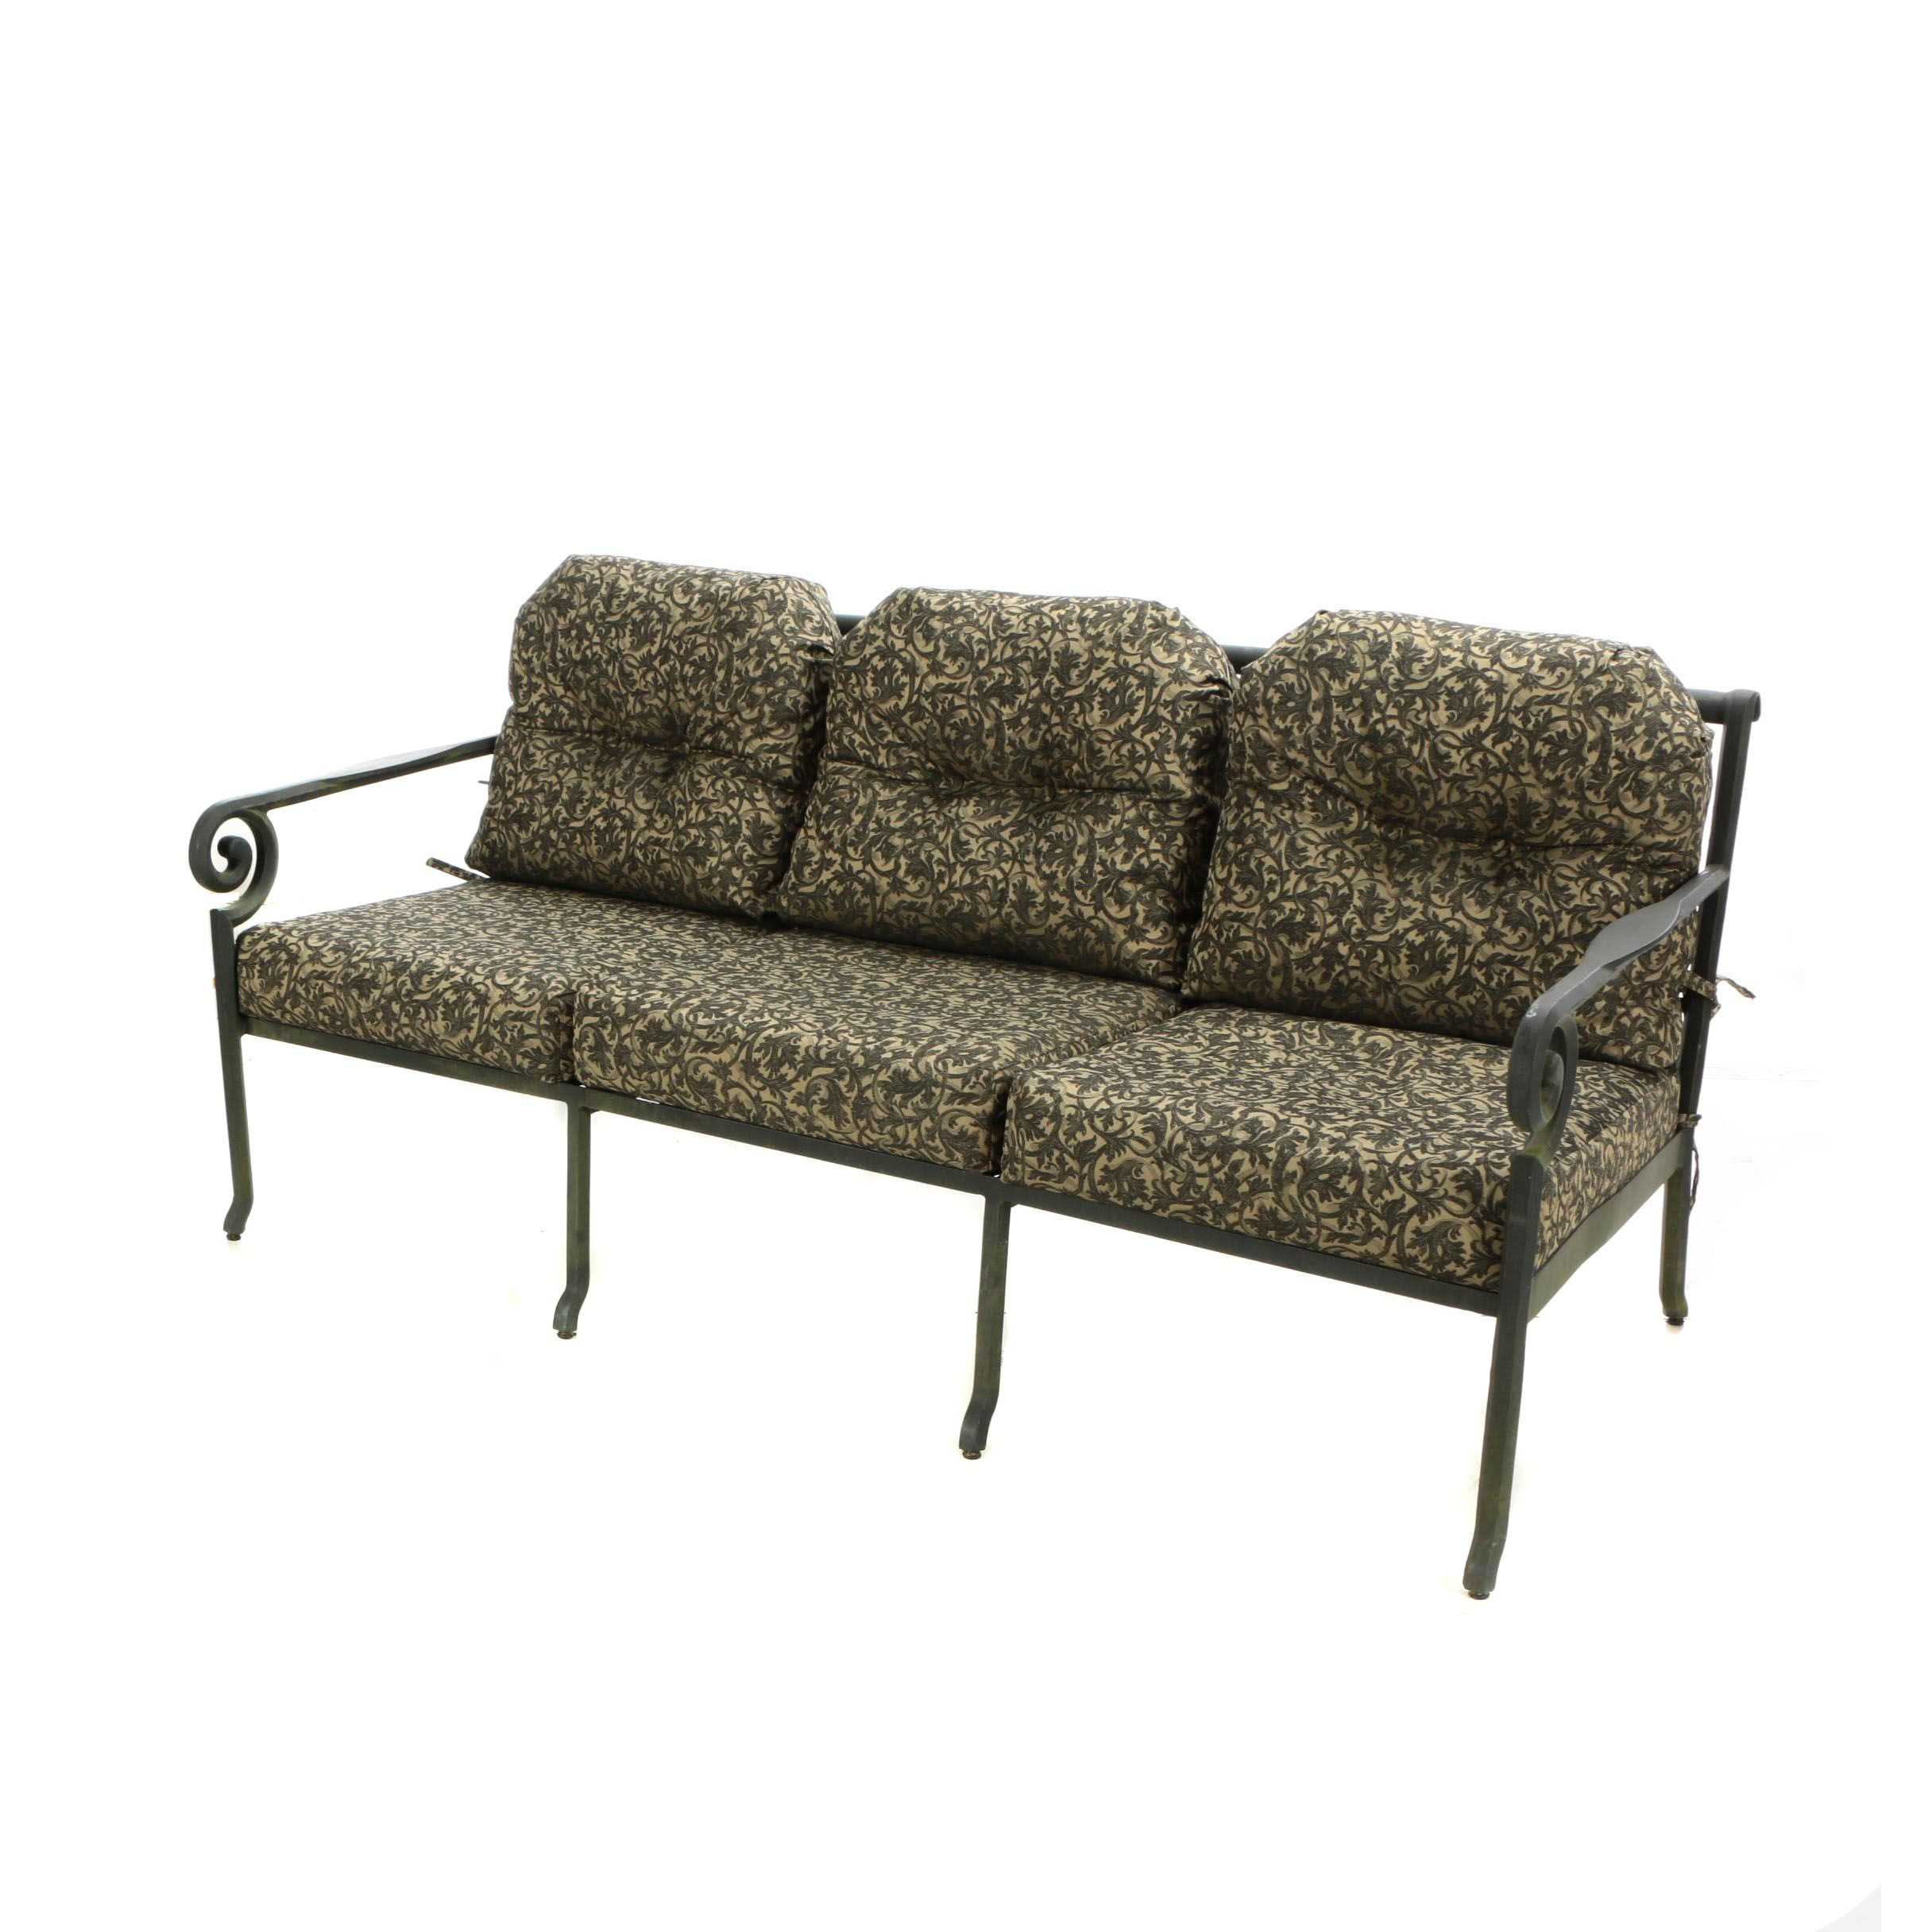 Contemporary Cast-Aluminum Patio Sofa by Windham Castings